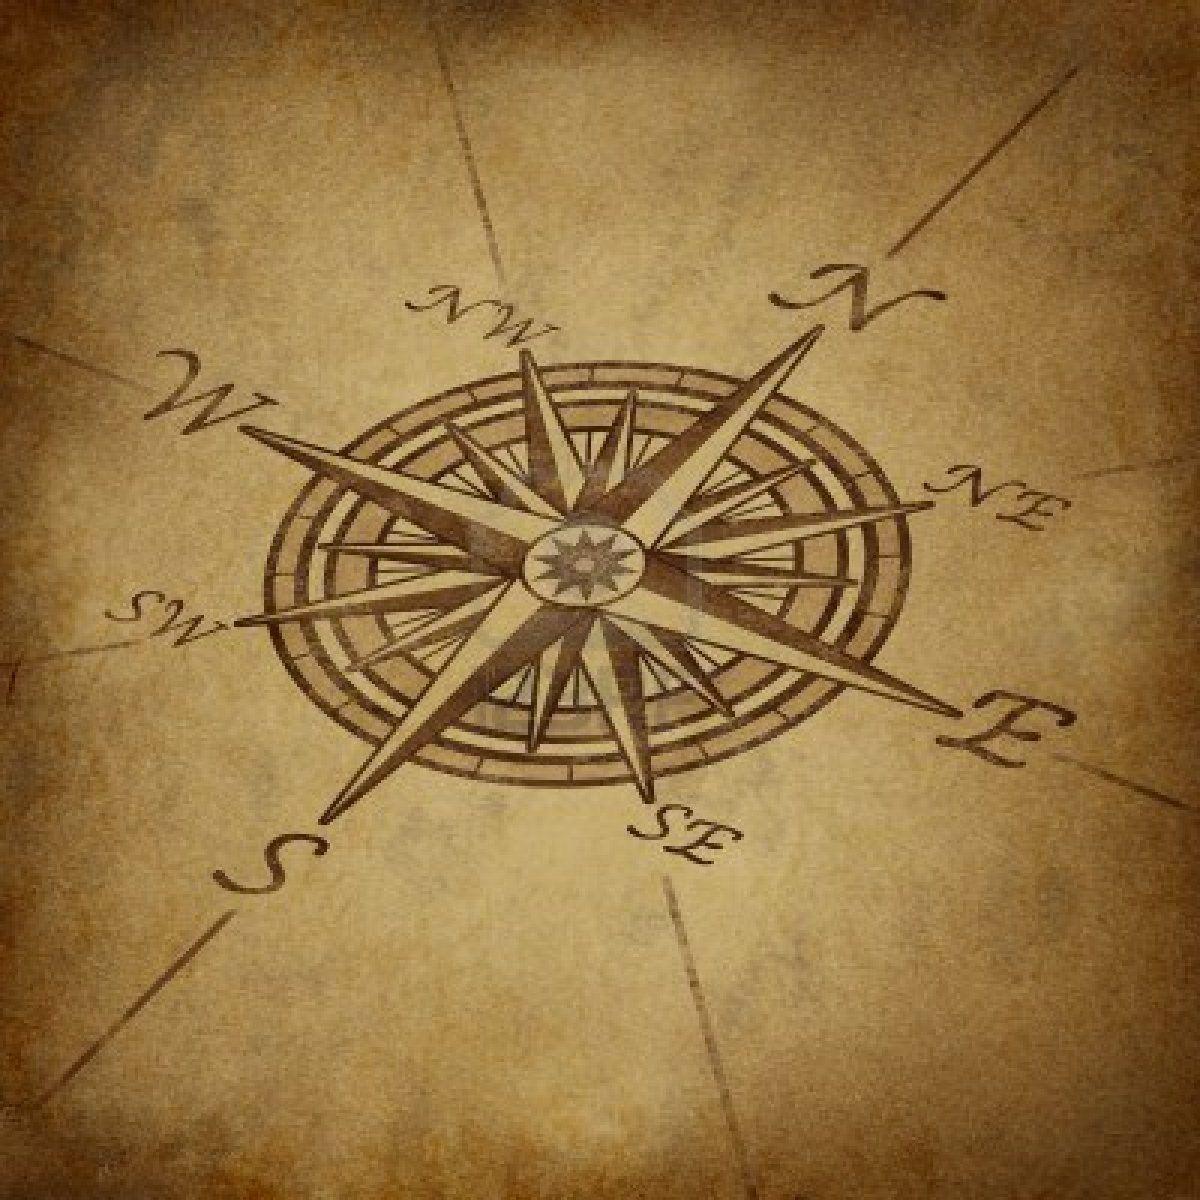 Antique Compass Rose Designs | www.imgkid.com - The Image ...